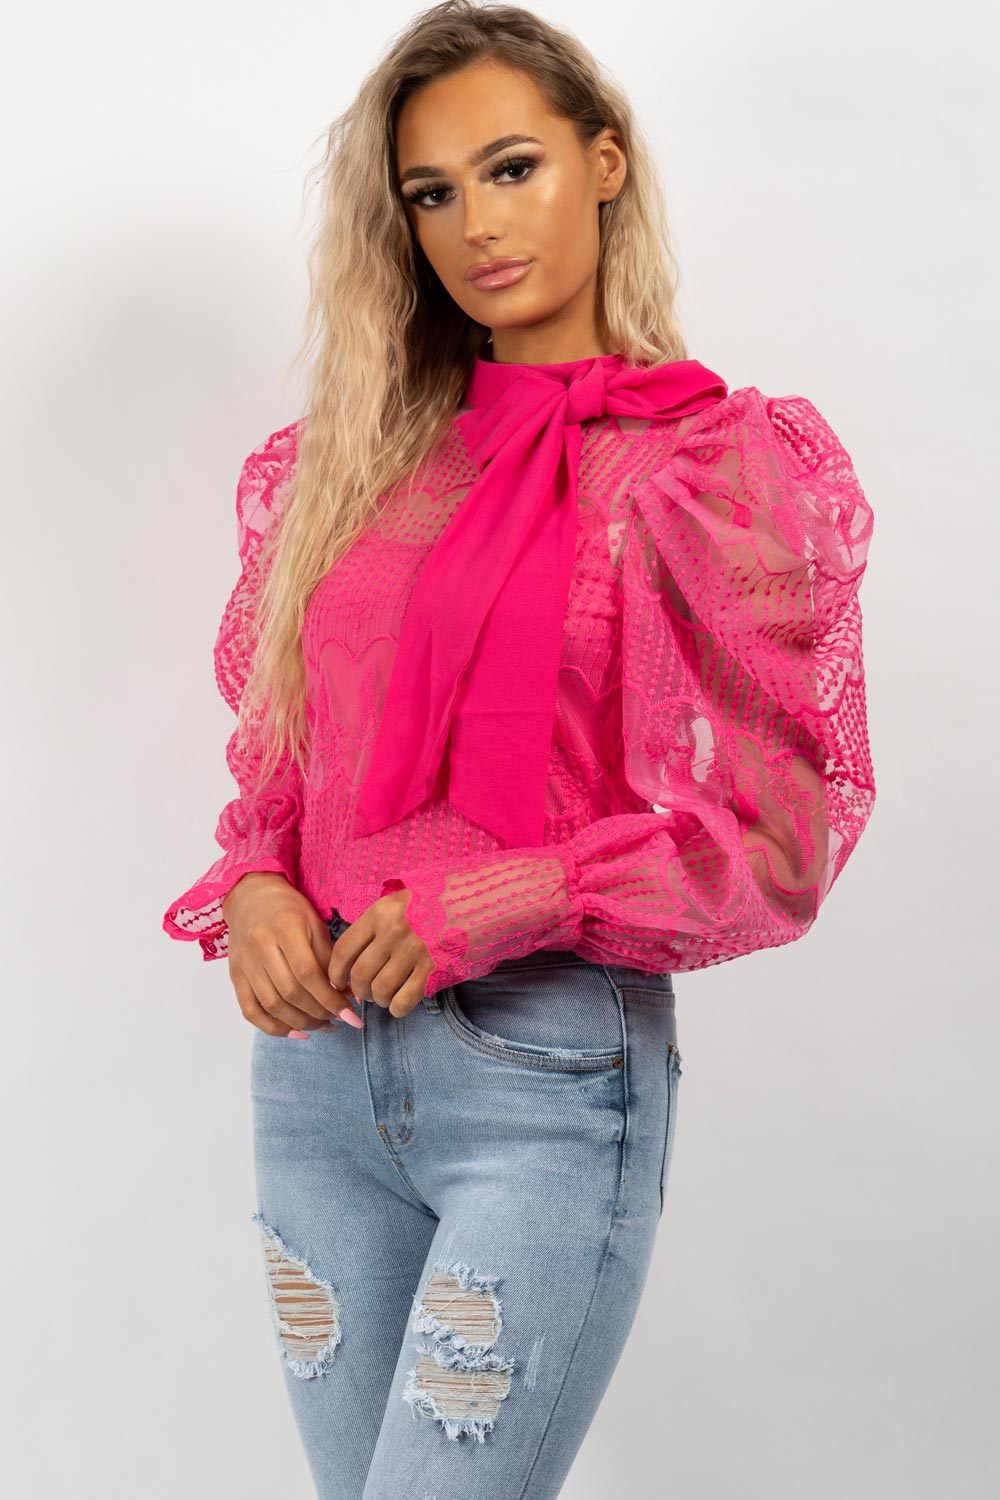 pink puff sleeve lace top